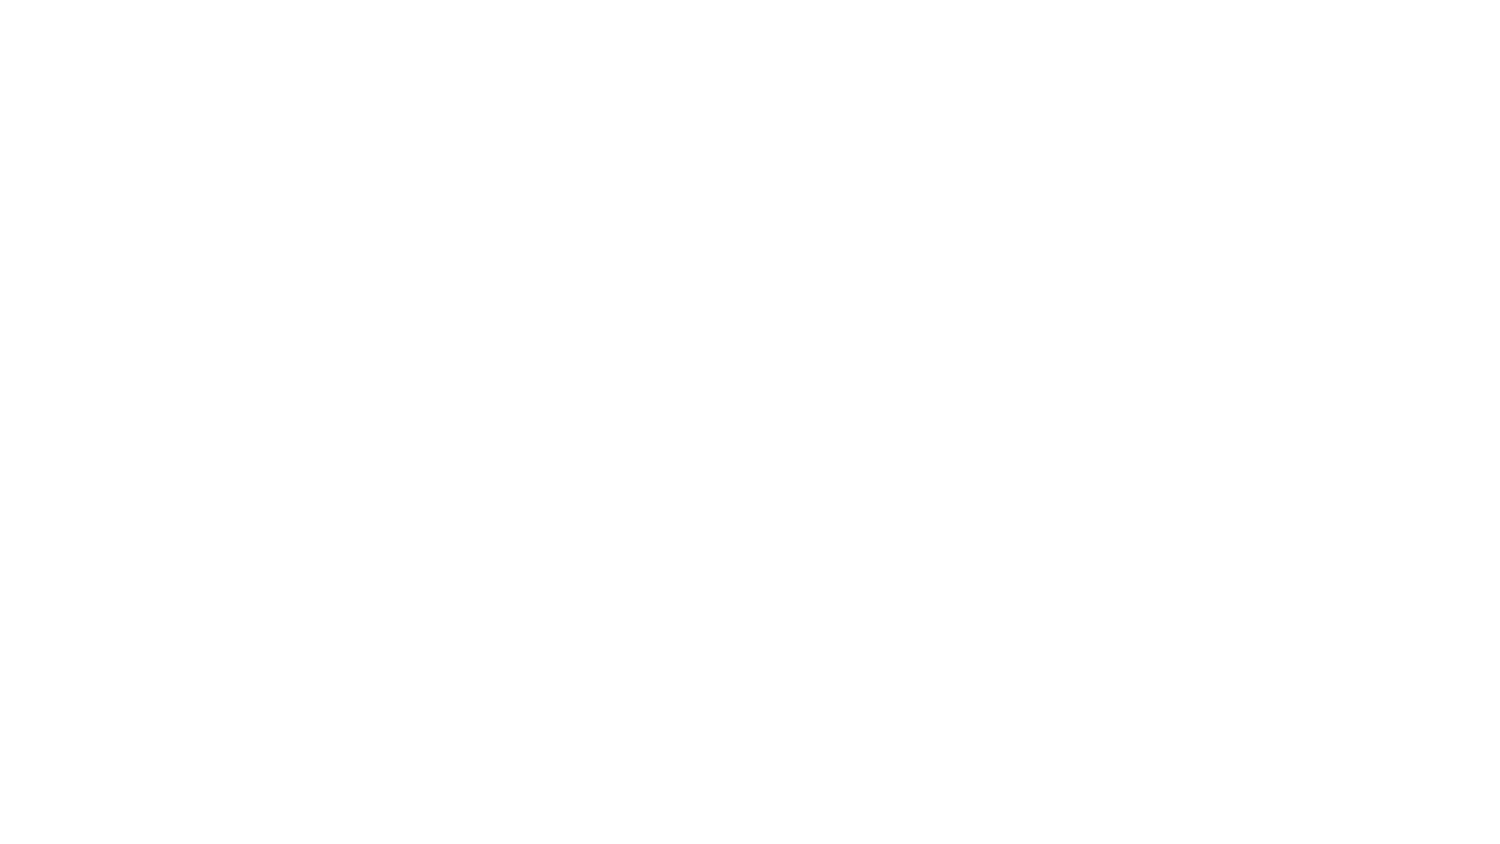 Chris Allen Band